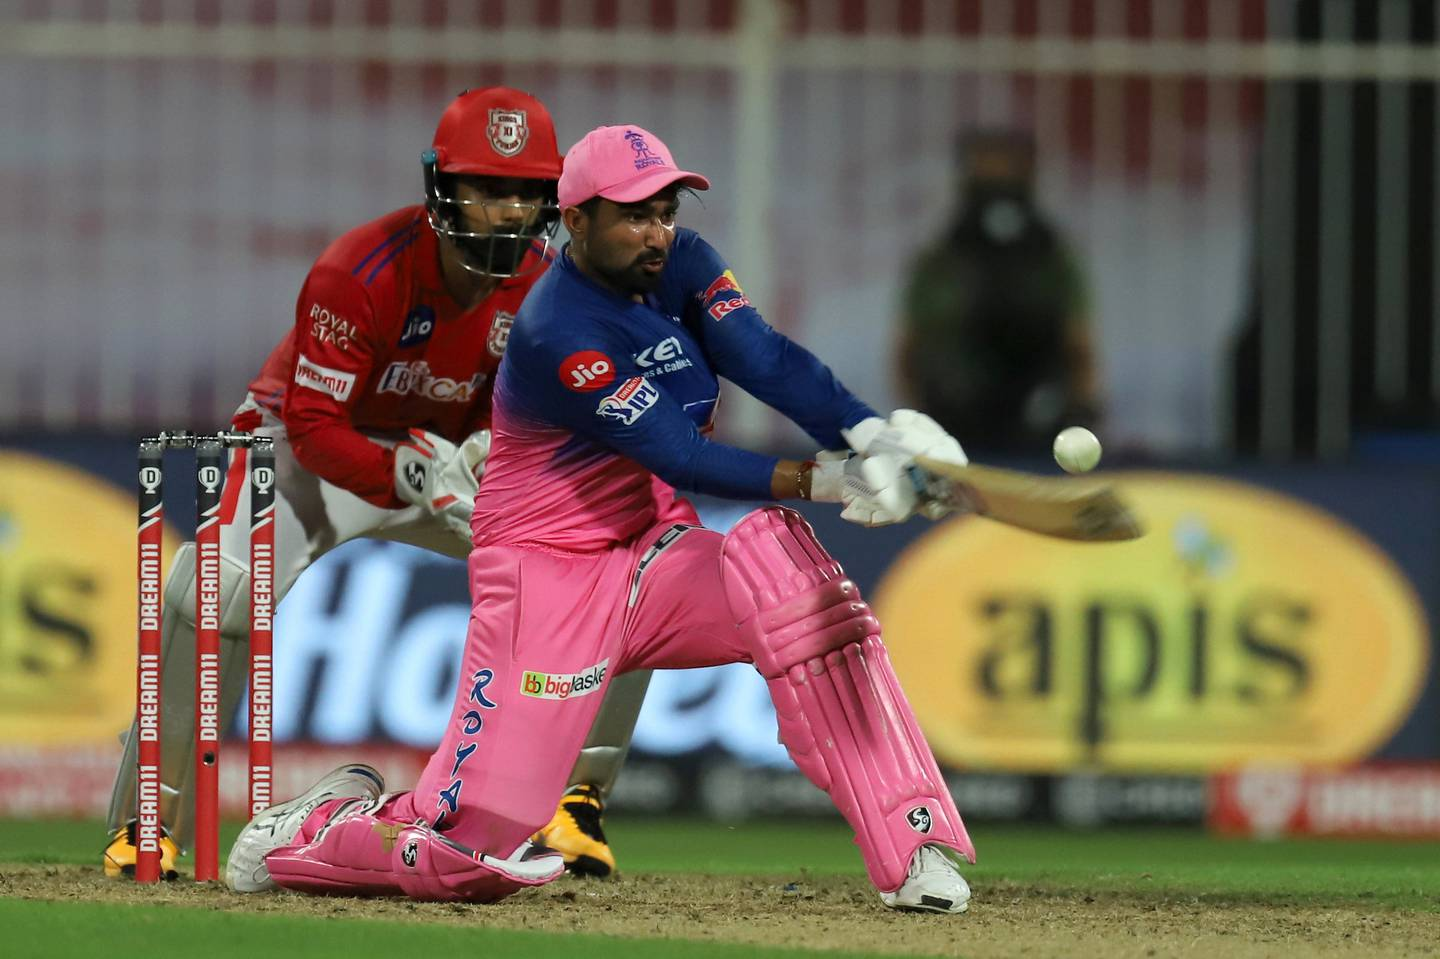 Rahul Tewatia of Rajasthan Royals  bats during match 9 season 13 of the Dream 11 Indian Premier League (IPL) between Rajasthan Royals and Kings XI Punjab held at the Sharjah Cricket Stadium, Sharjah in the United Arab Emirates on the 27th September 2020. Photo by: Deepak Malik  / Sportzpics for BCCI